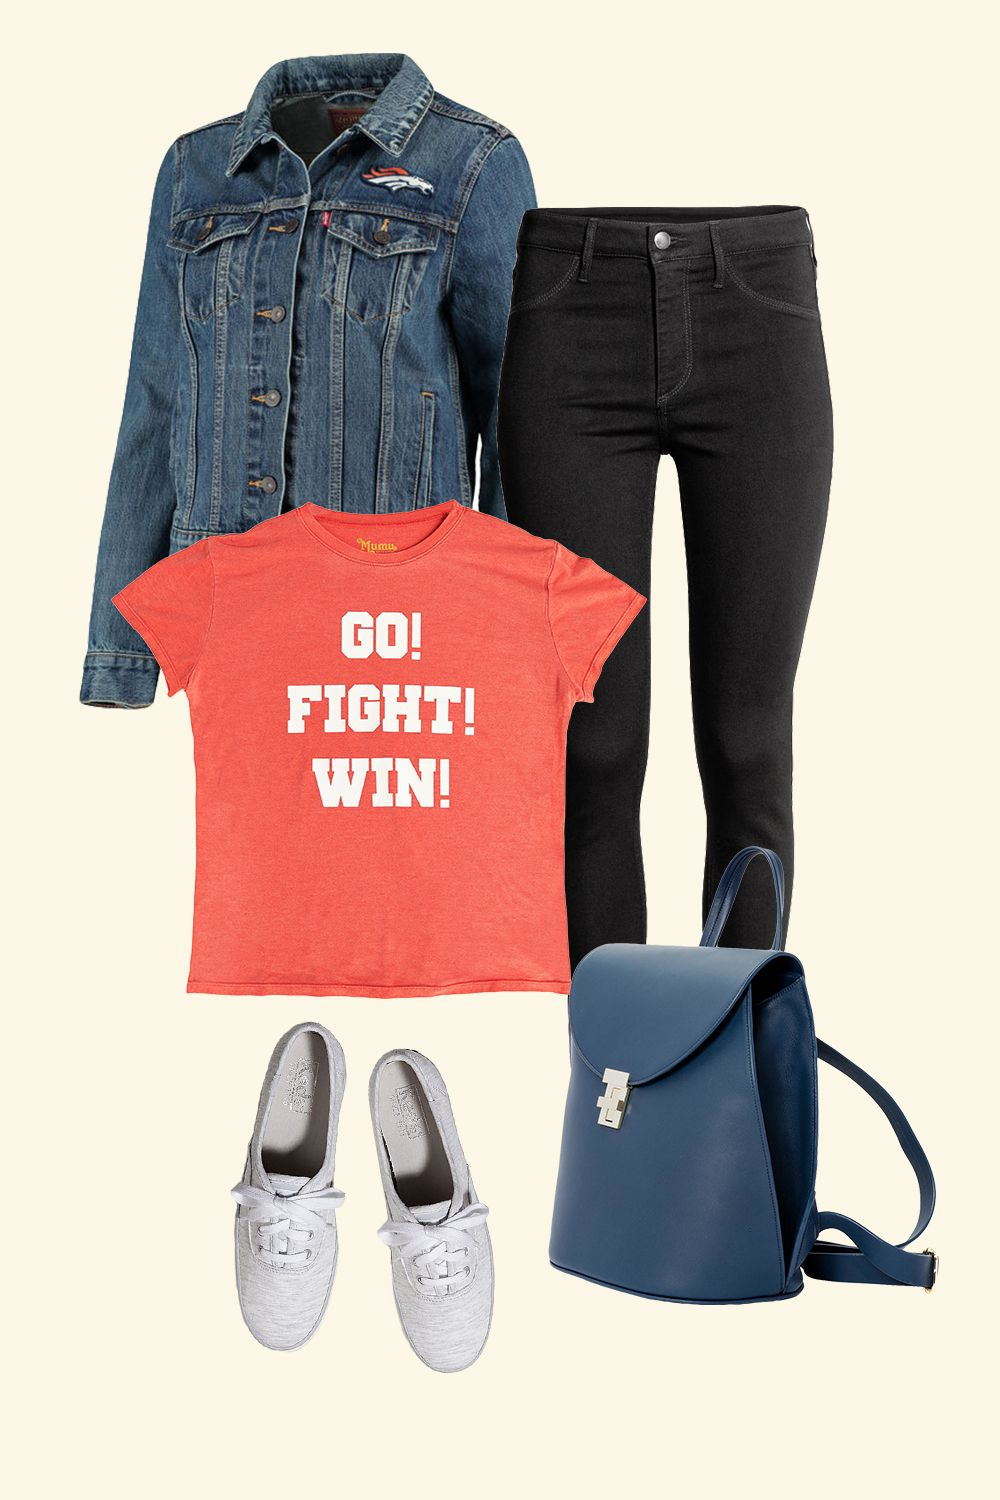 "<p>Show your spirit (and get a wardrobe classic&nbsp&#x3B;to boot) with a denim jacket that features your favorite team—then add some easy basics like black jeans, a sleek bag, and sneakers.&nbsp&#x3B;</p><p><br></p><p><em data-redactor-tag=""em"" data-verified=""redactor"">Levi's NFL Denim Jacket, $108, <a href=""http://www.levi.com/US/en_US/features/nfl"" target=""_blank"">levi.com</a>&#x3B;&nbsp&#x3B;H&amp&#x3B;M Skinny High Ankle Black Jeans, $10, <a href=""http://www.hm.com/us/product/47550?"" target=""_blank"">hm.com</a>&#x3B;&nbsp&#x3B;Coalson Go Fight Win Tee, $77, <a href=""http://www.showmeyourmumu.com/coalson-tee-go-fight-win-graphic"" target=""_blank"">showmeyourmumu.com</a>&#x3B;&nbsp&#x3B;Keds Champion Jersey in Light Gray, $50, <a href=""http://www.keds.com/en/champion-jersey/14077W.html?dwvar_14077W_color=WF55600#cgid=women-ourshops-seasonalcollection&amp&#x3B;start=1"" target=""_blank"">Keds.com</a>&#x3B;&nbsp&#x3B;Neely &amp&#x3B; Chloe No. 3 the Backpack, $298, </em><a href=""https://neelyandchloe.com/product/no-3-the-backpack-soft/"" target=""_blank""><em data-redactor-tag=""em"" data-verified=""redactor"">neelyandchloe.com</em></a></p>"